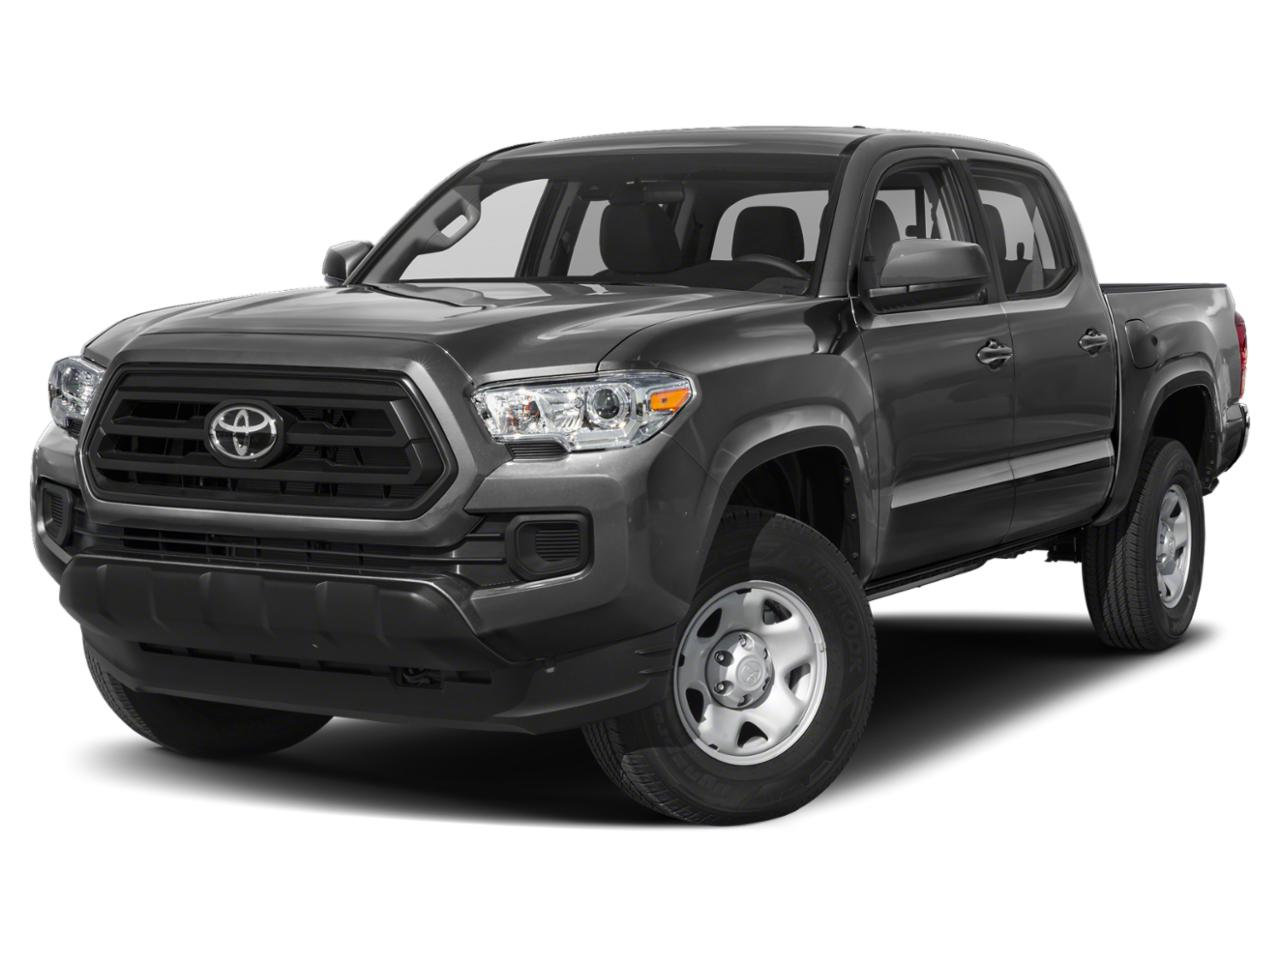 2021 Toyota Tacoma 4WD Vehicle Photo in Oshkosh, WI 54904